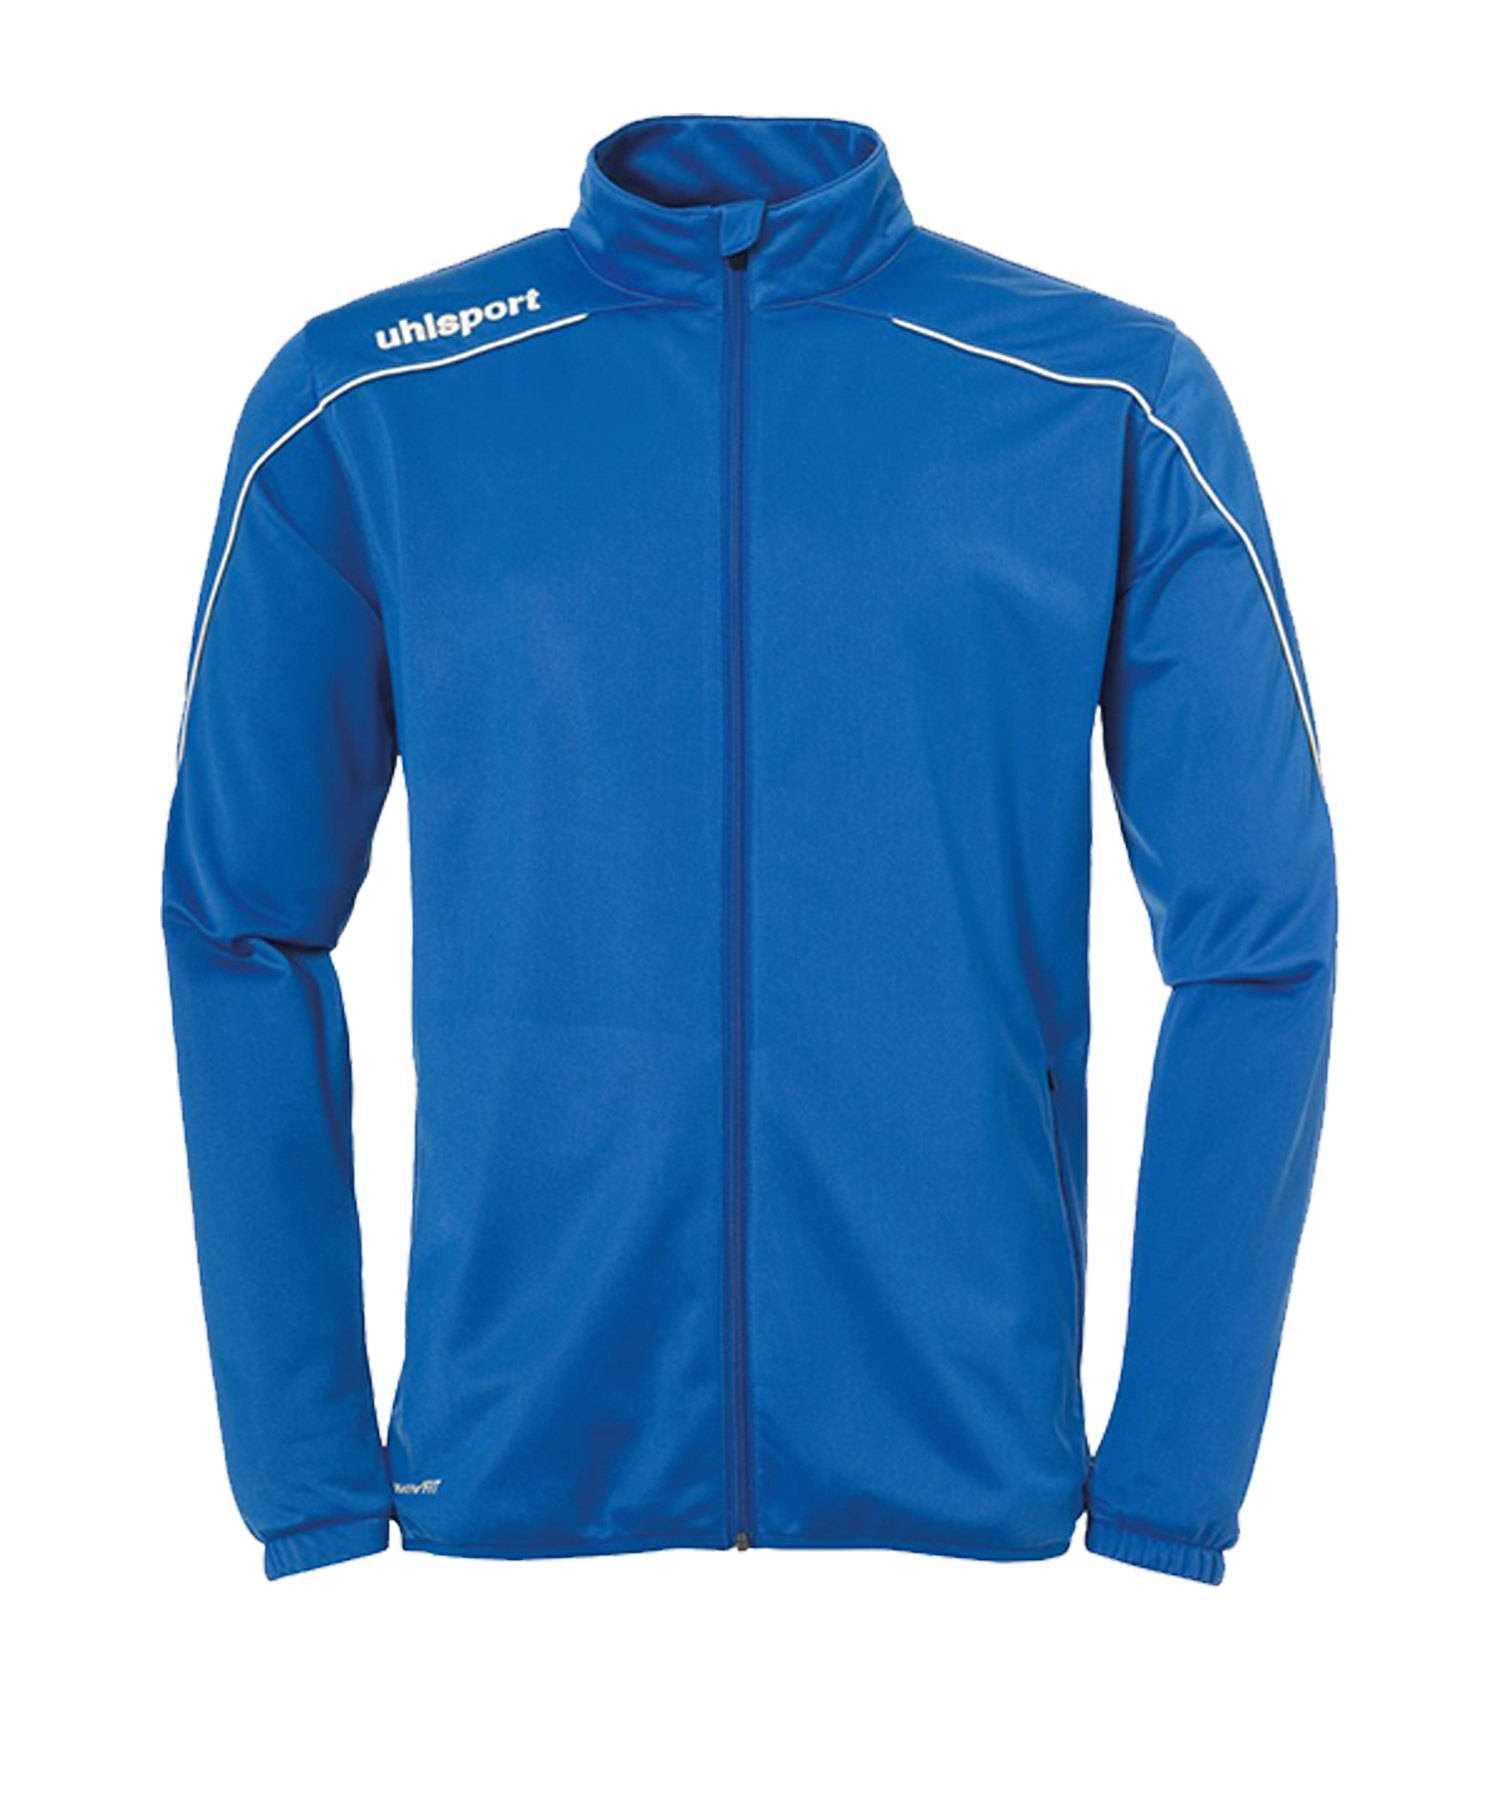 Uhlsport Stream 22 Trainingsjacke Classic Kids F03 - Blau